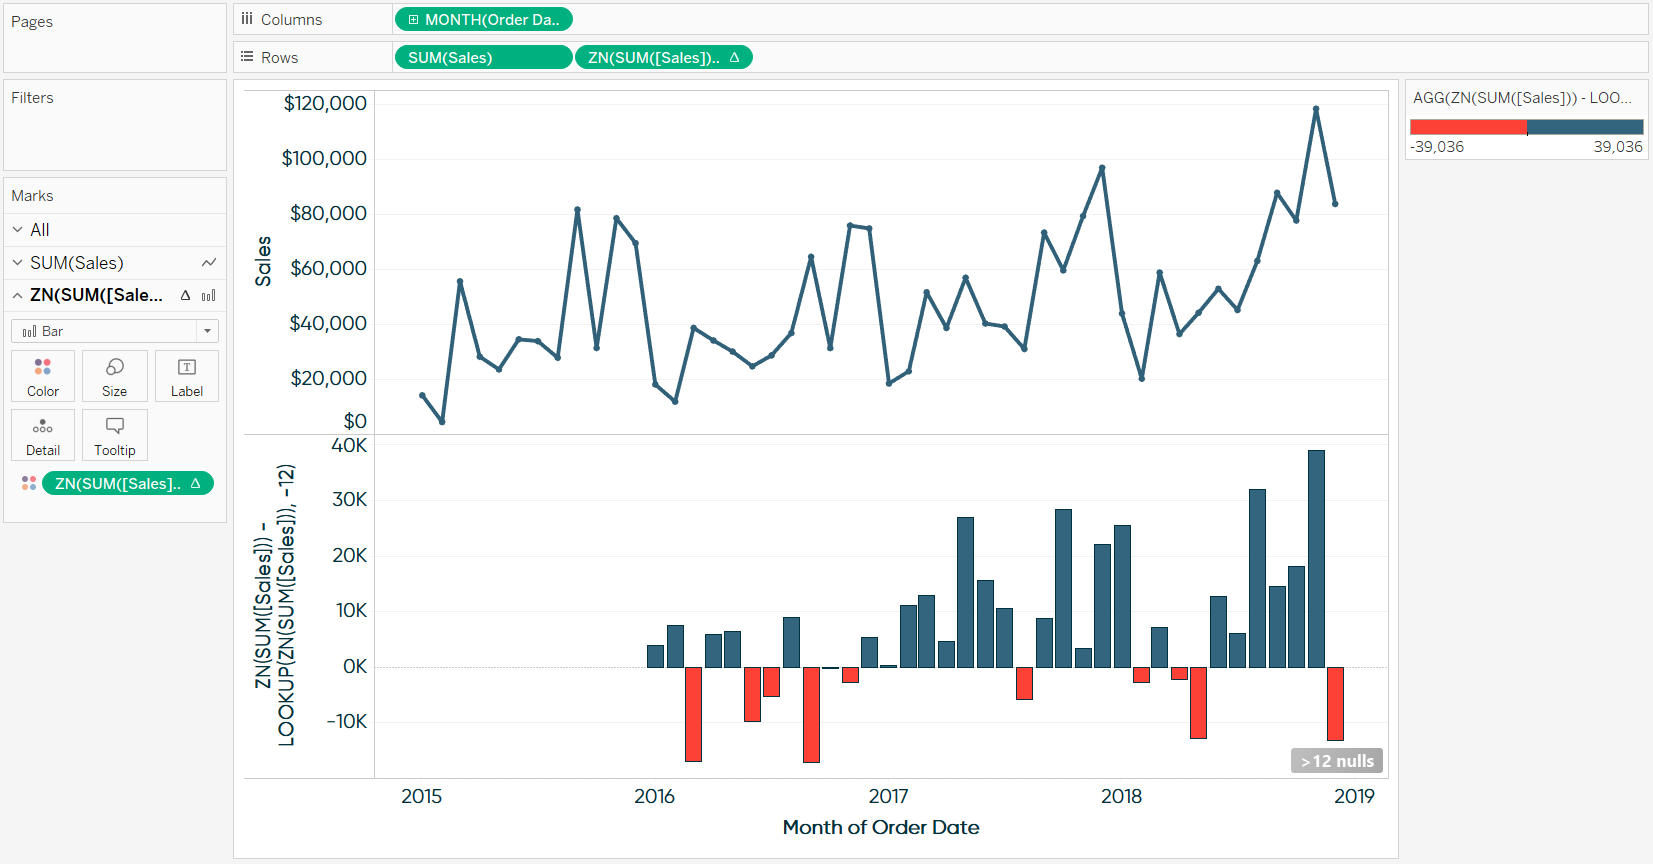 Two Row Combination Chart Showing Sales and Year over Year Difference in Tableau